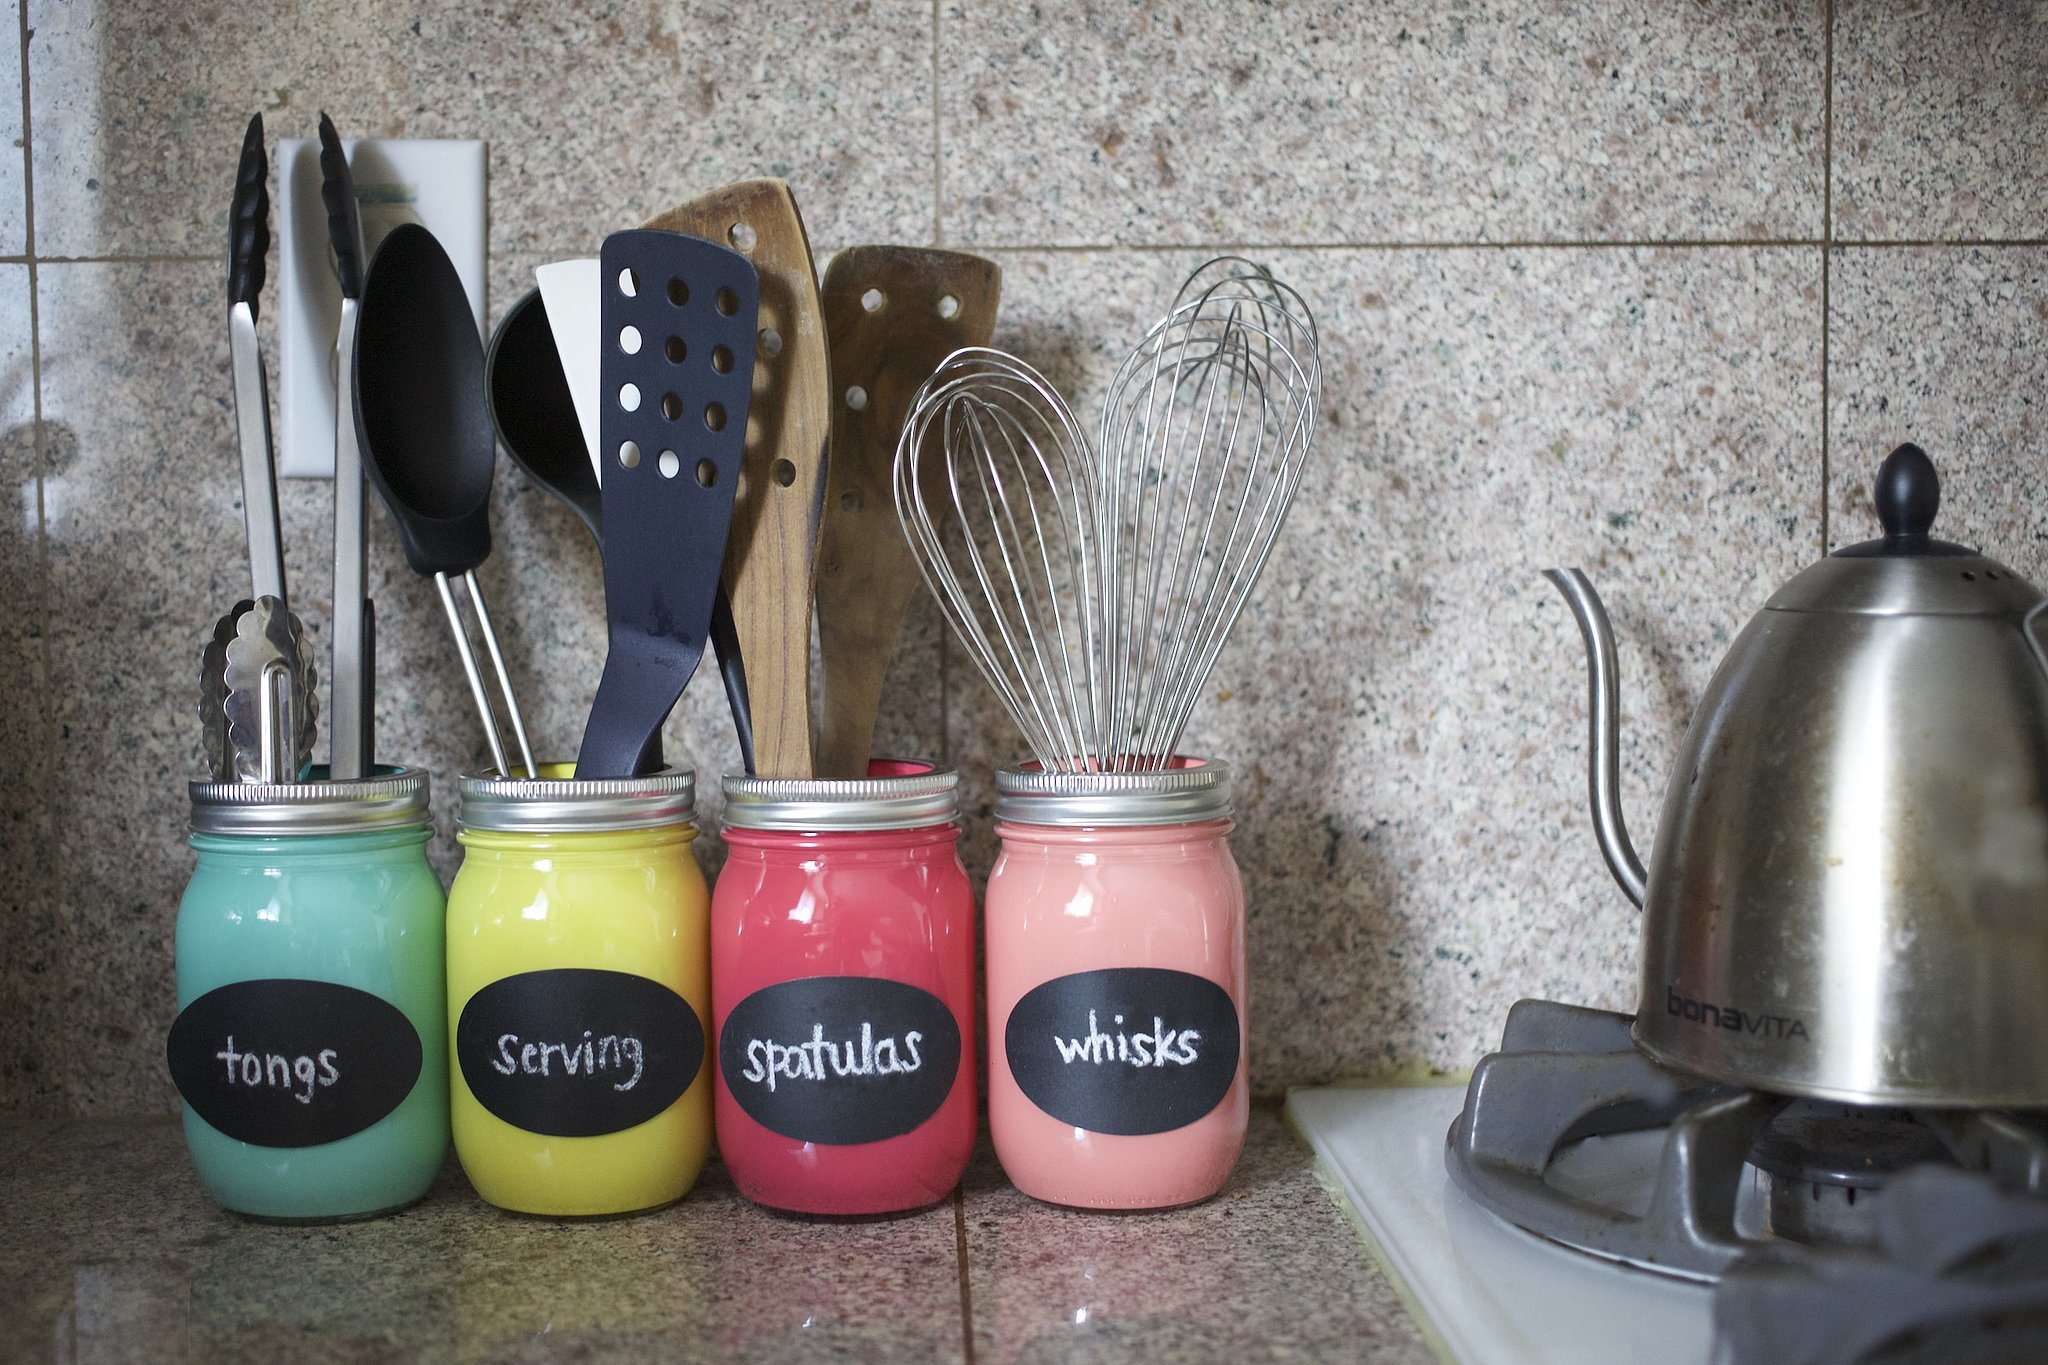 diy mason jar organizer | popsugar smart living